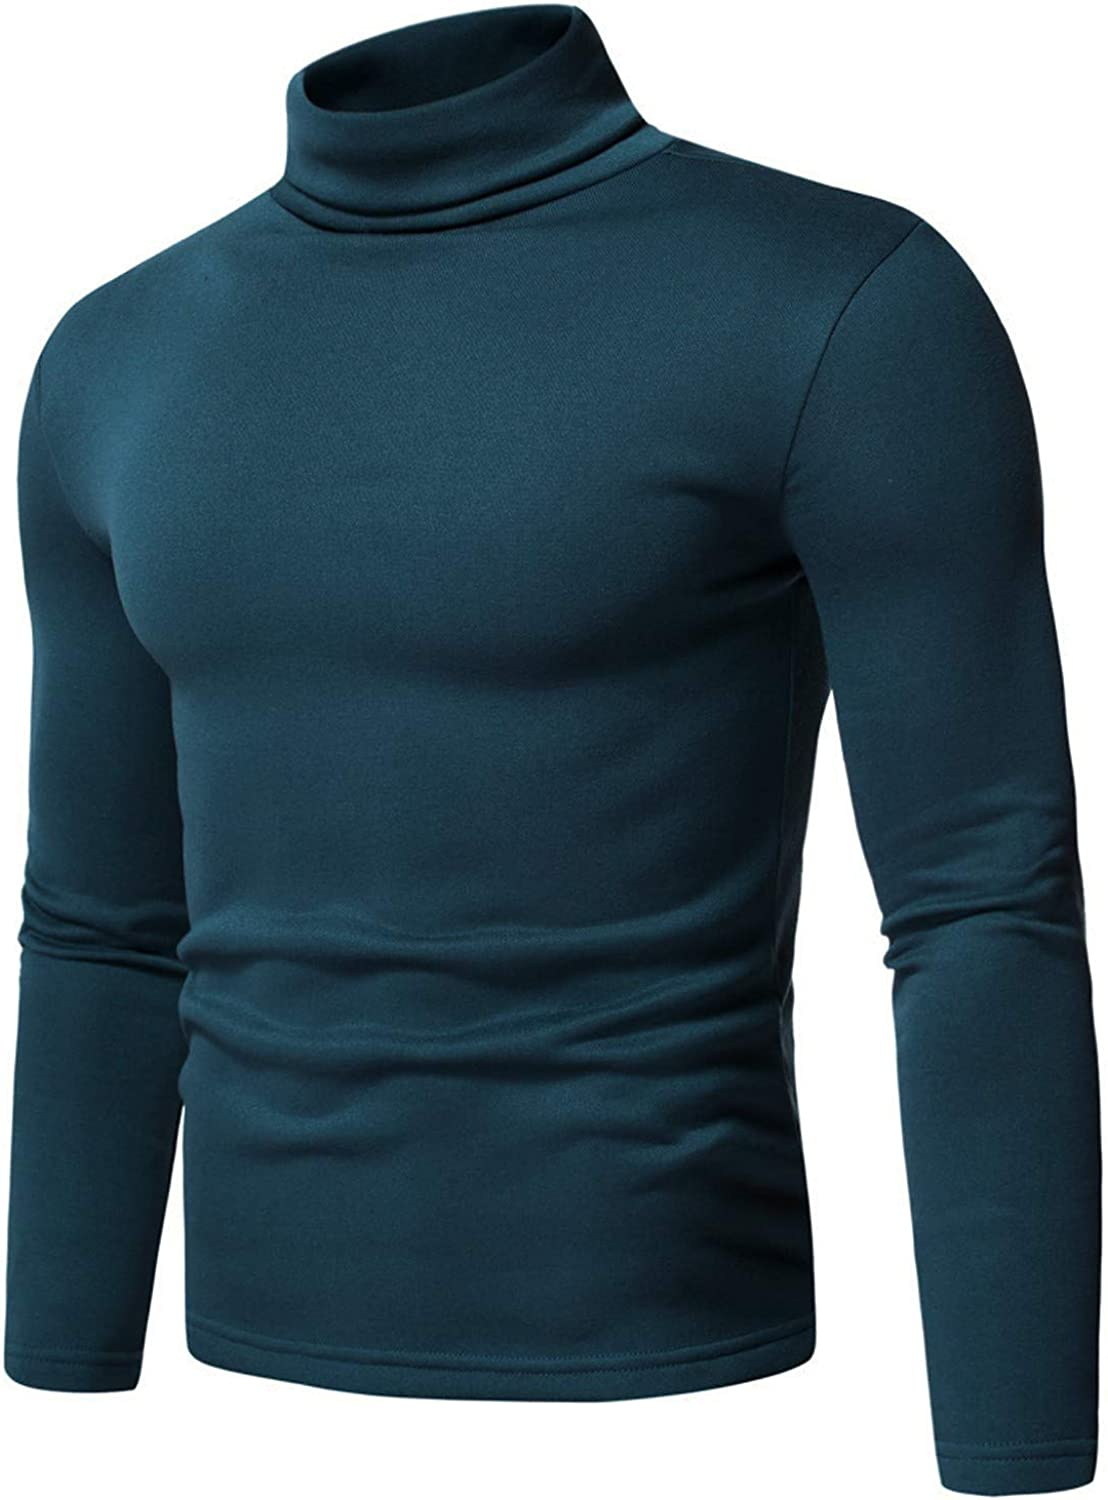 BEIBEIA Men Turtleneck Long Sleeve Tops Solid Stretch Slim Fit Bottoming Shirts Basic Pullover Sweaters Thermal Tee